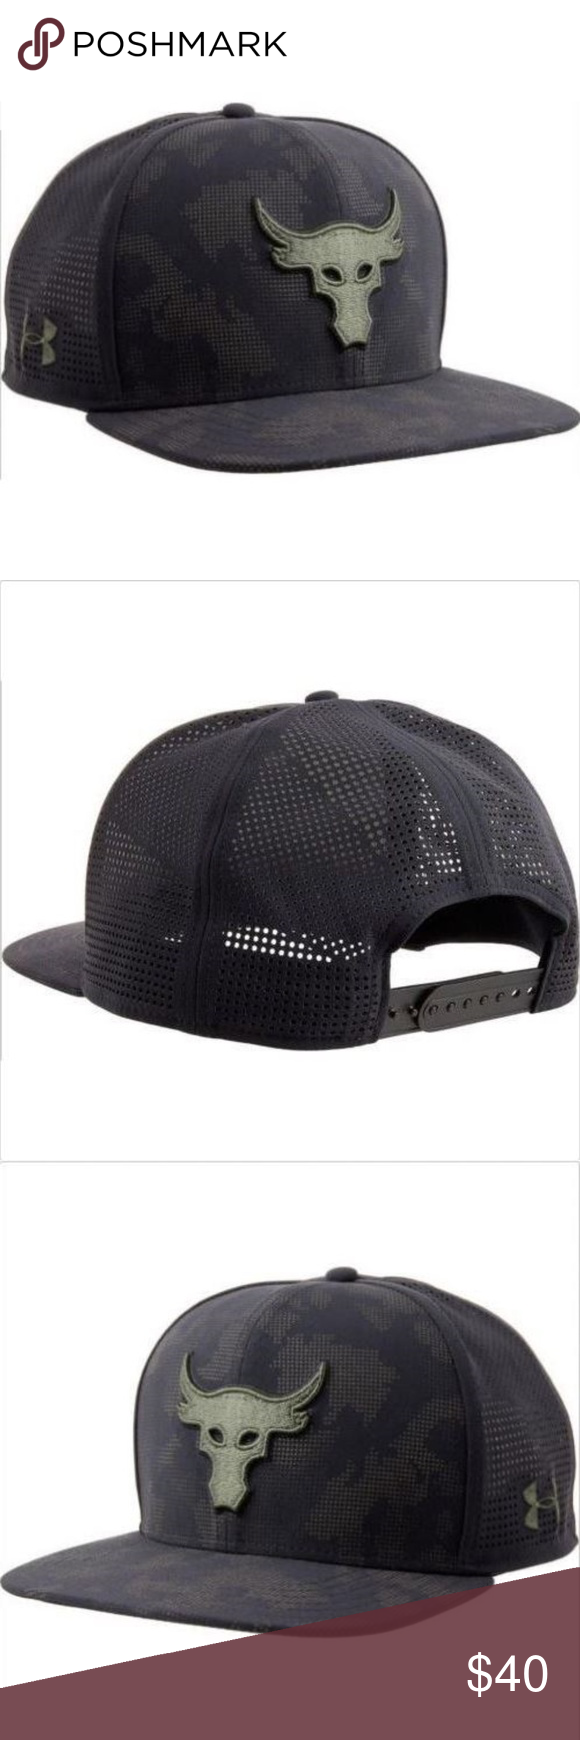 71dad11e Herren-Accessoires Under Armour UA x Project Rock Mesh Back SuperVent Mens  Snapback Cap Flat Hat